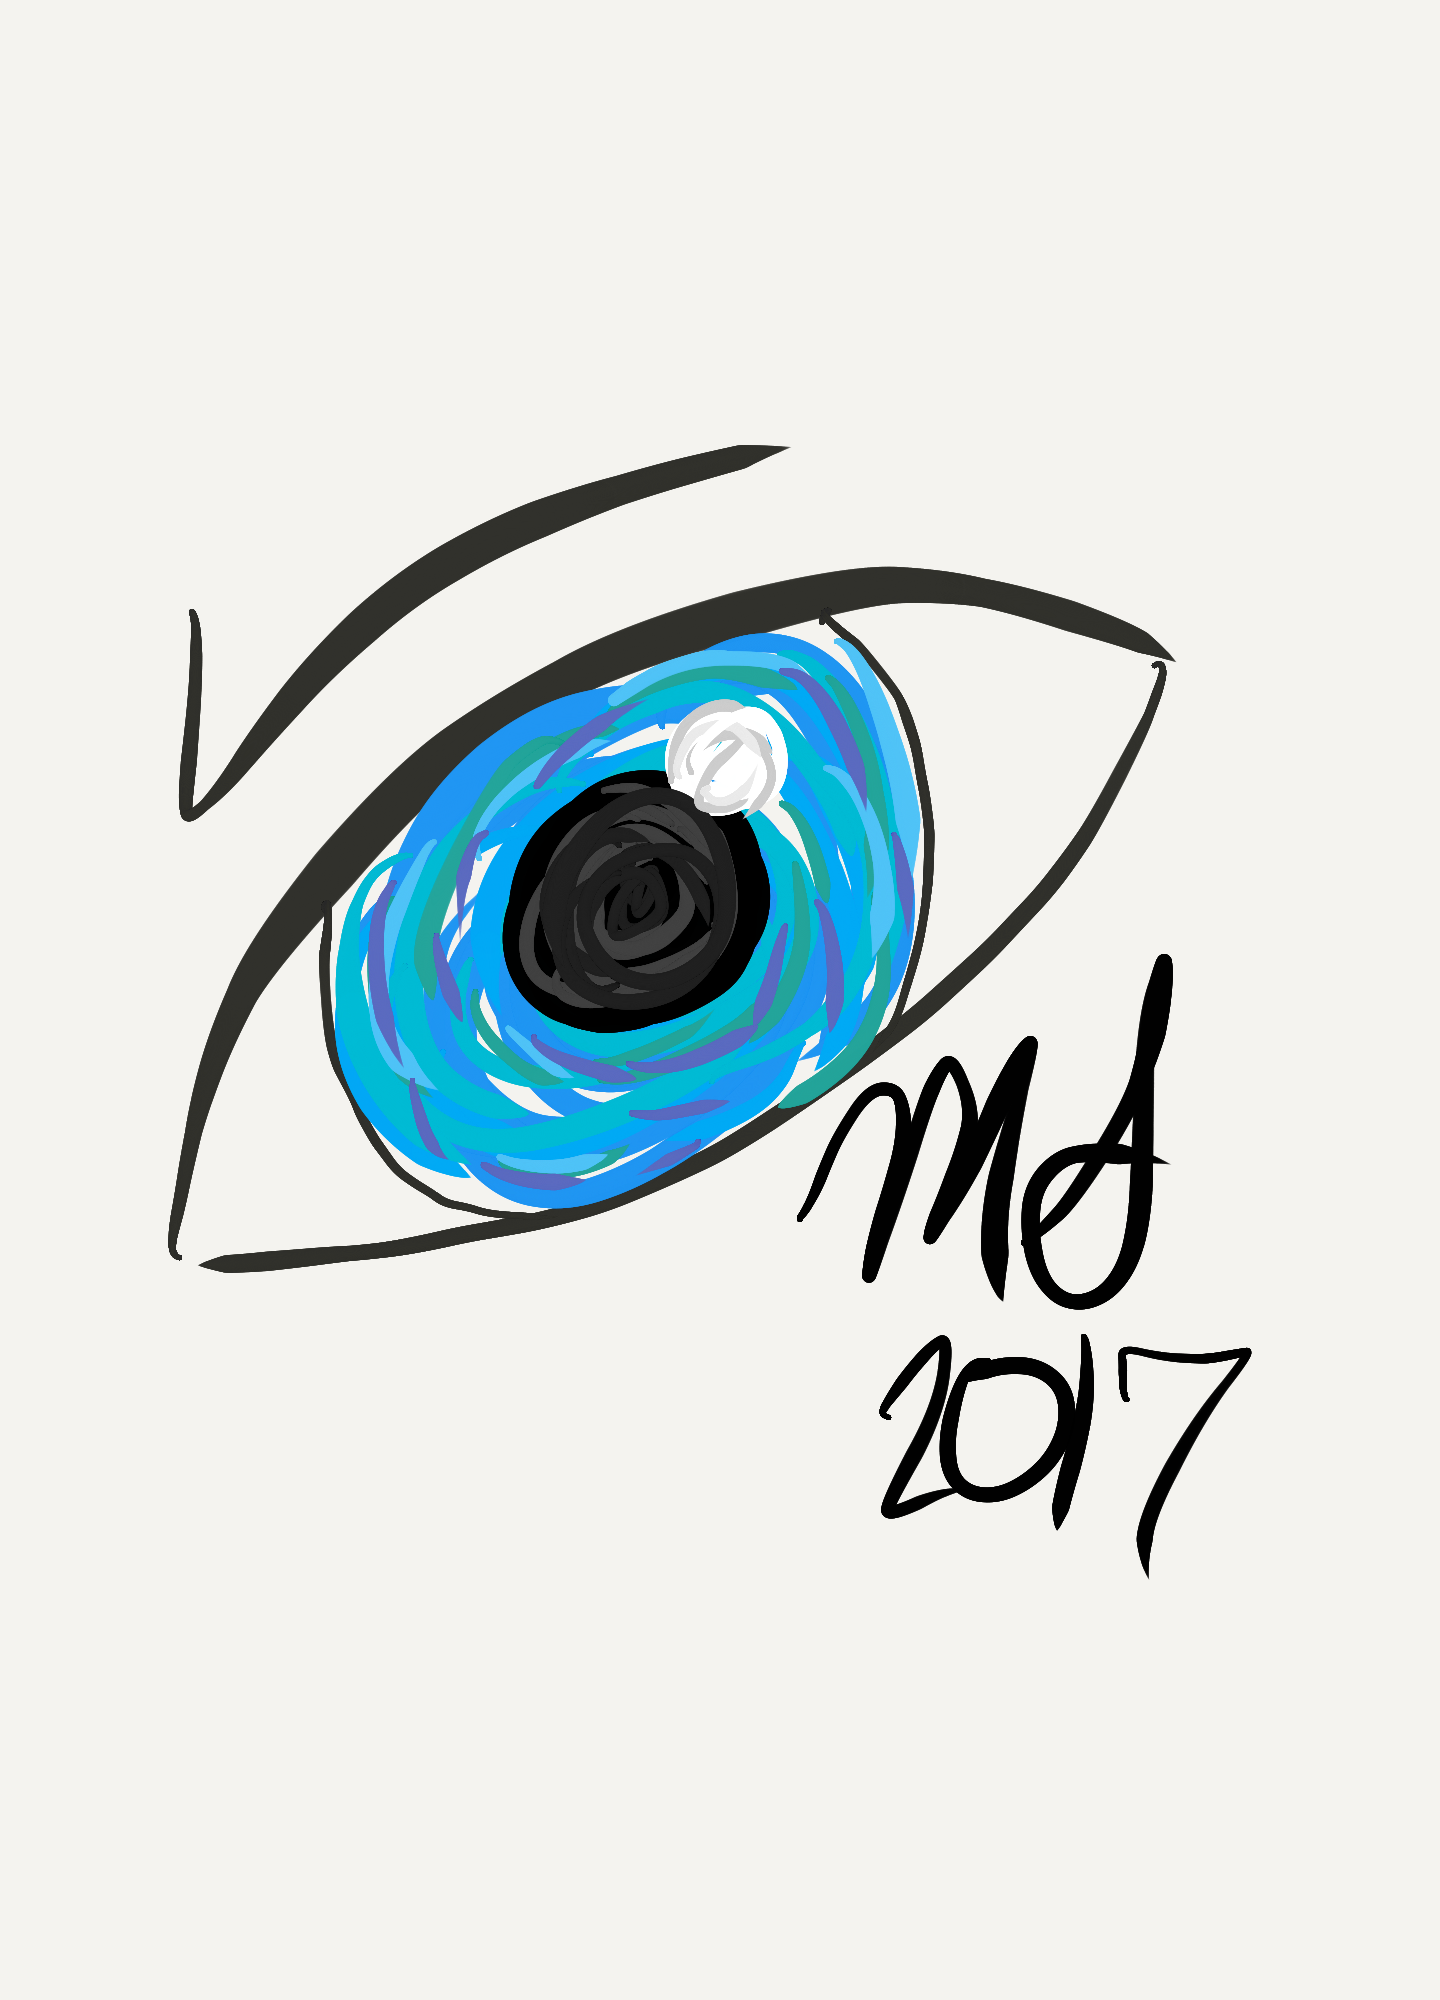 Doodle i did on PaperOne app by @Sassinator16